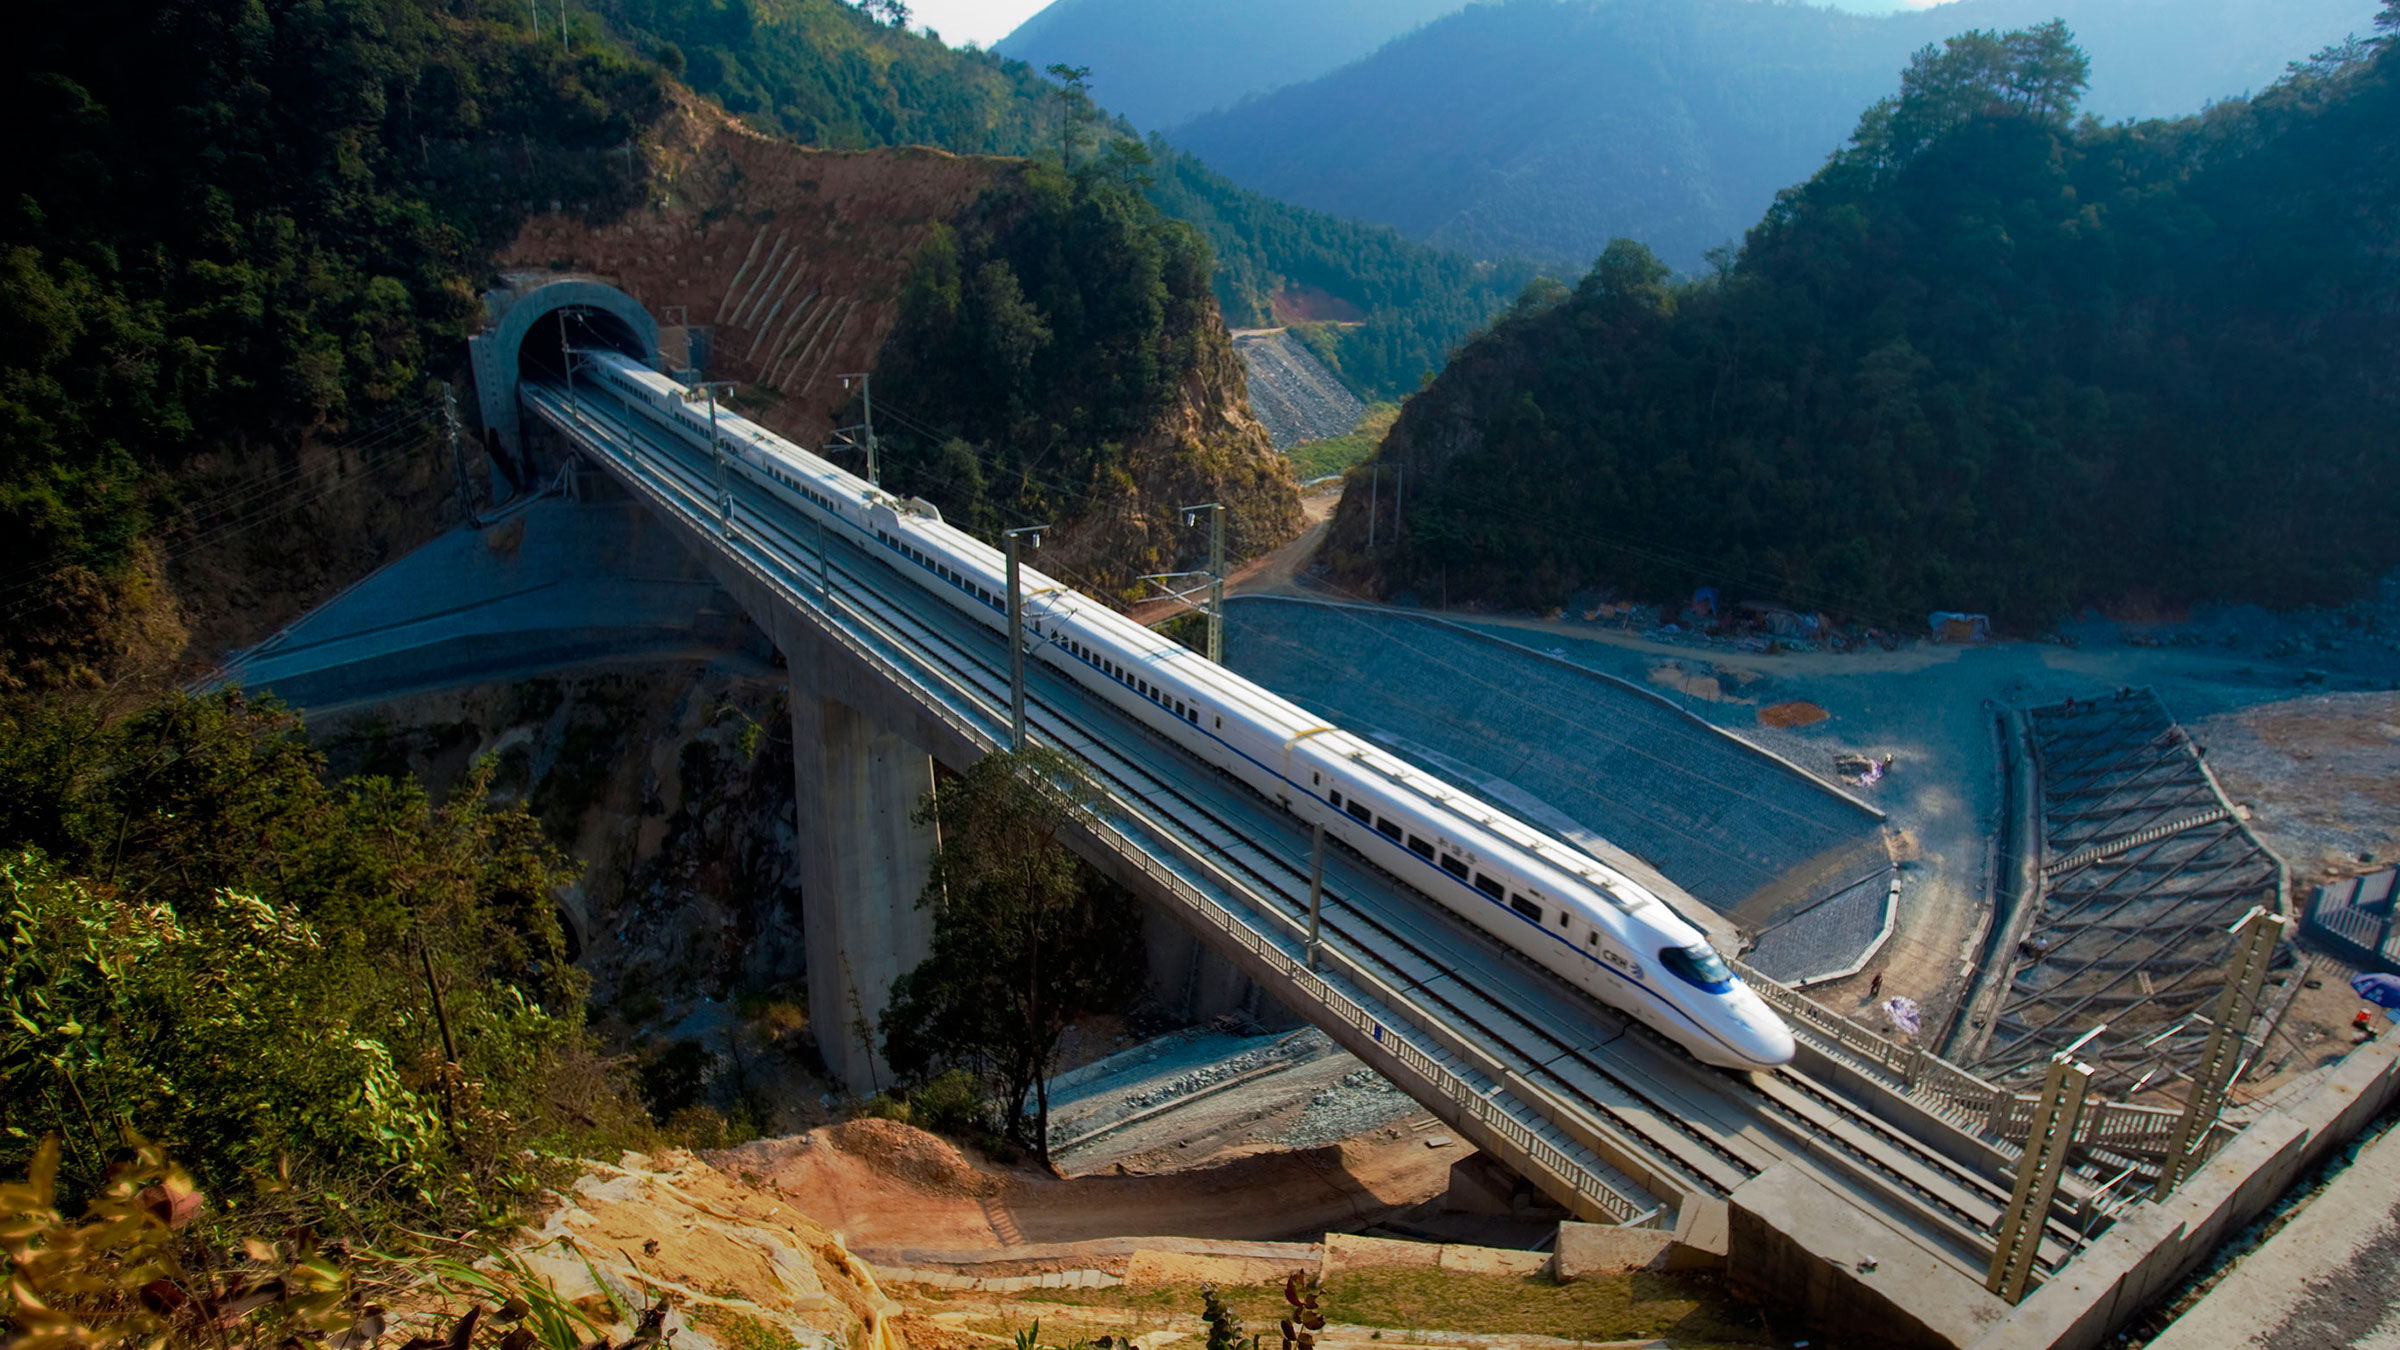 Amtrak is trying to catch up to China's high speeds.